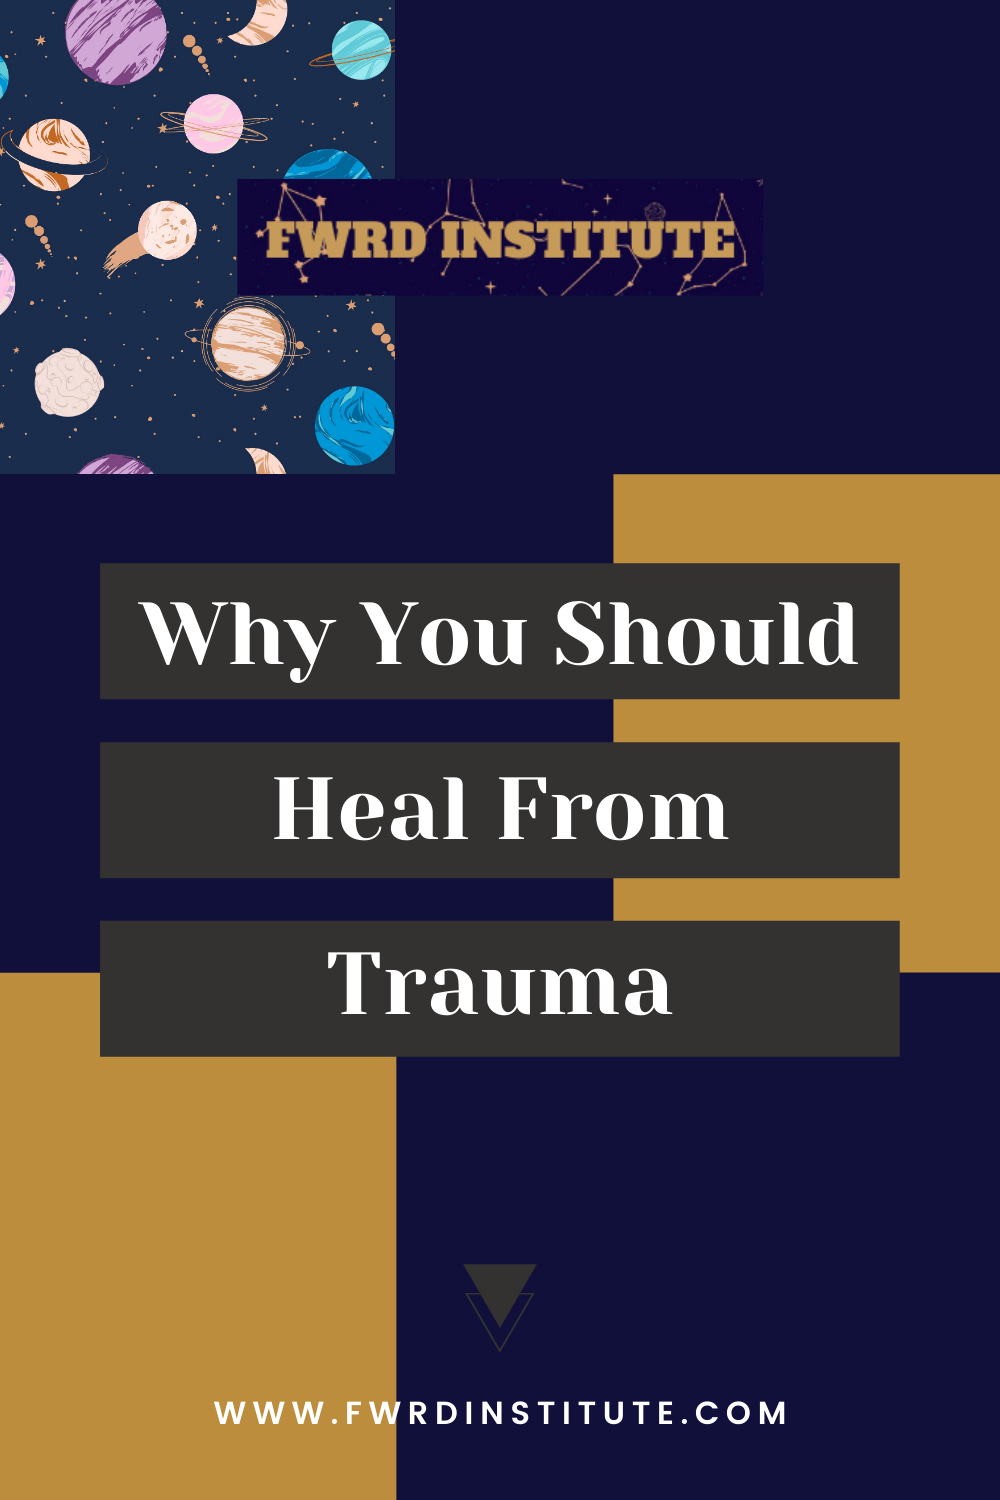 Why You Should Heal From Trauma